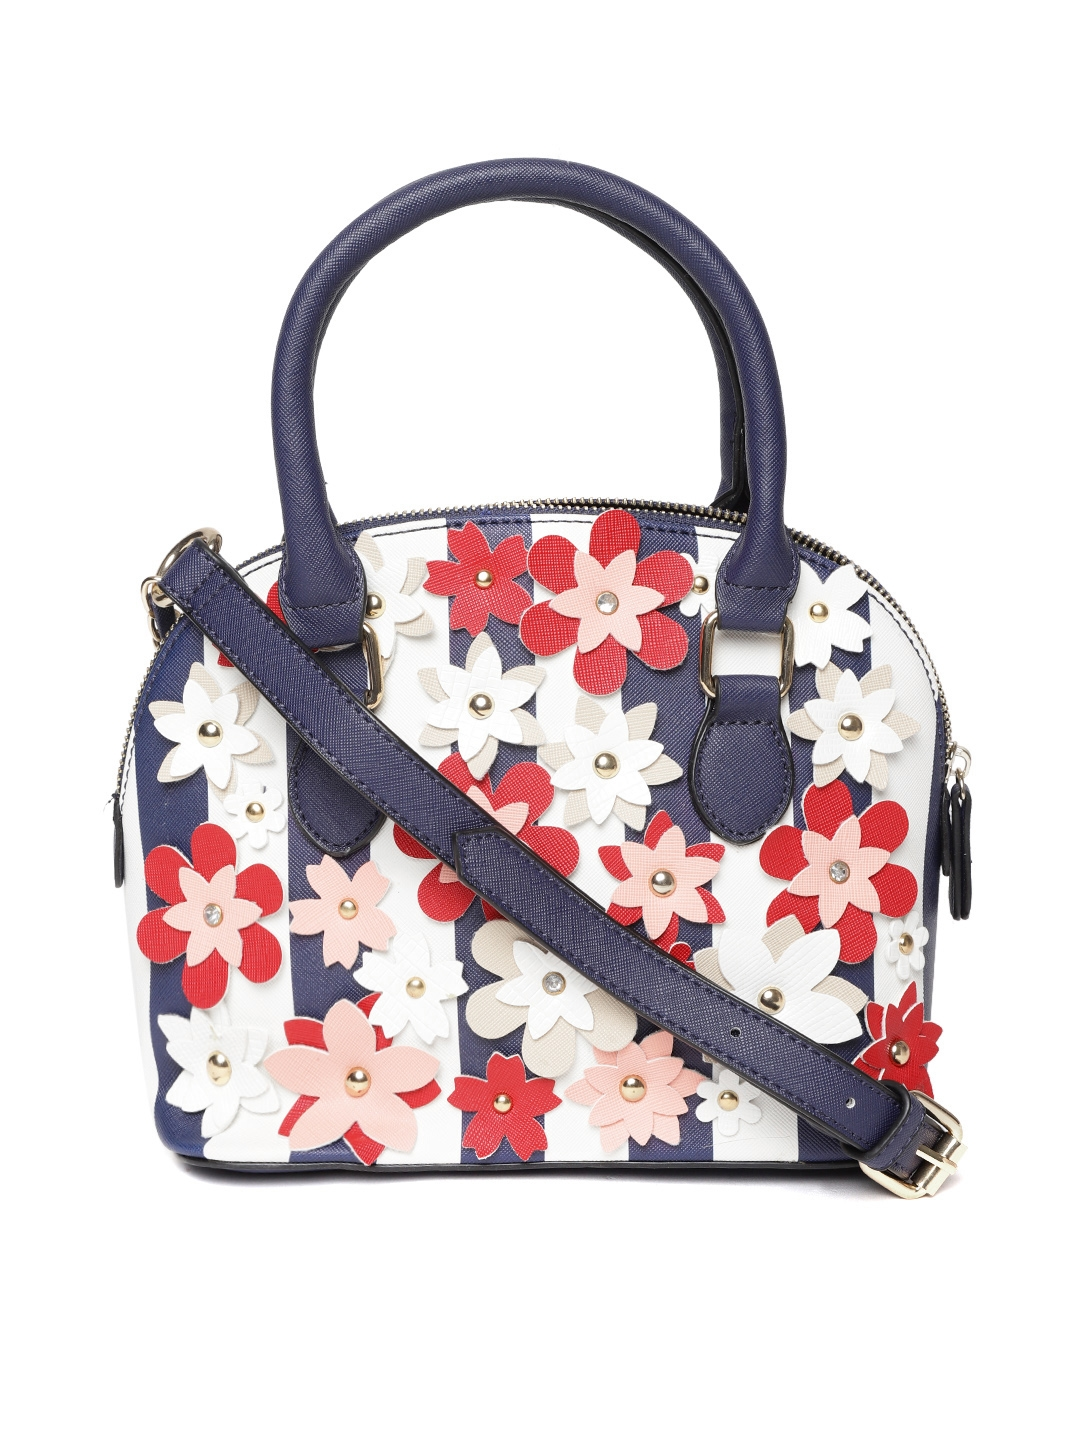 d10b3fa0c7 Buy ALDO Navy   White Striped Floral Applique Handheld Bag ...